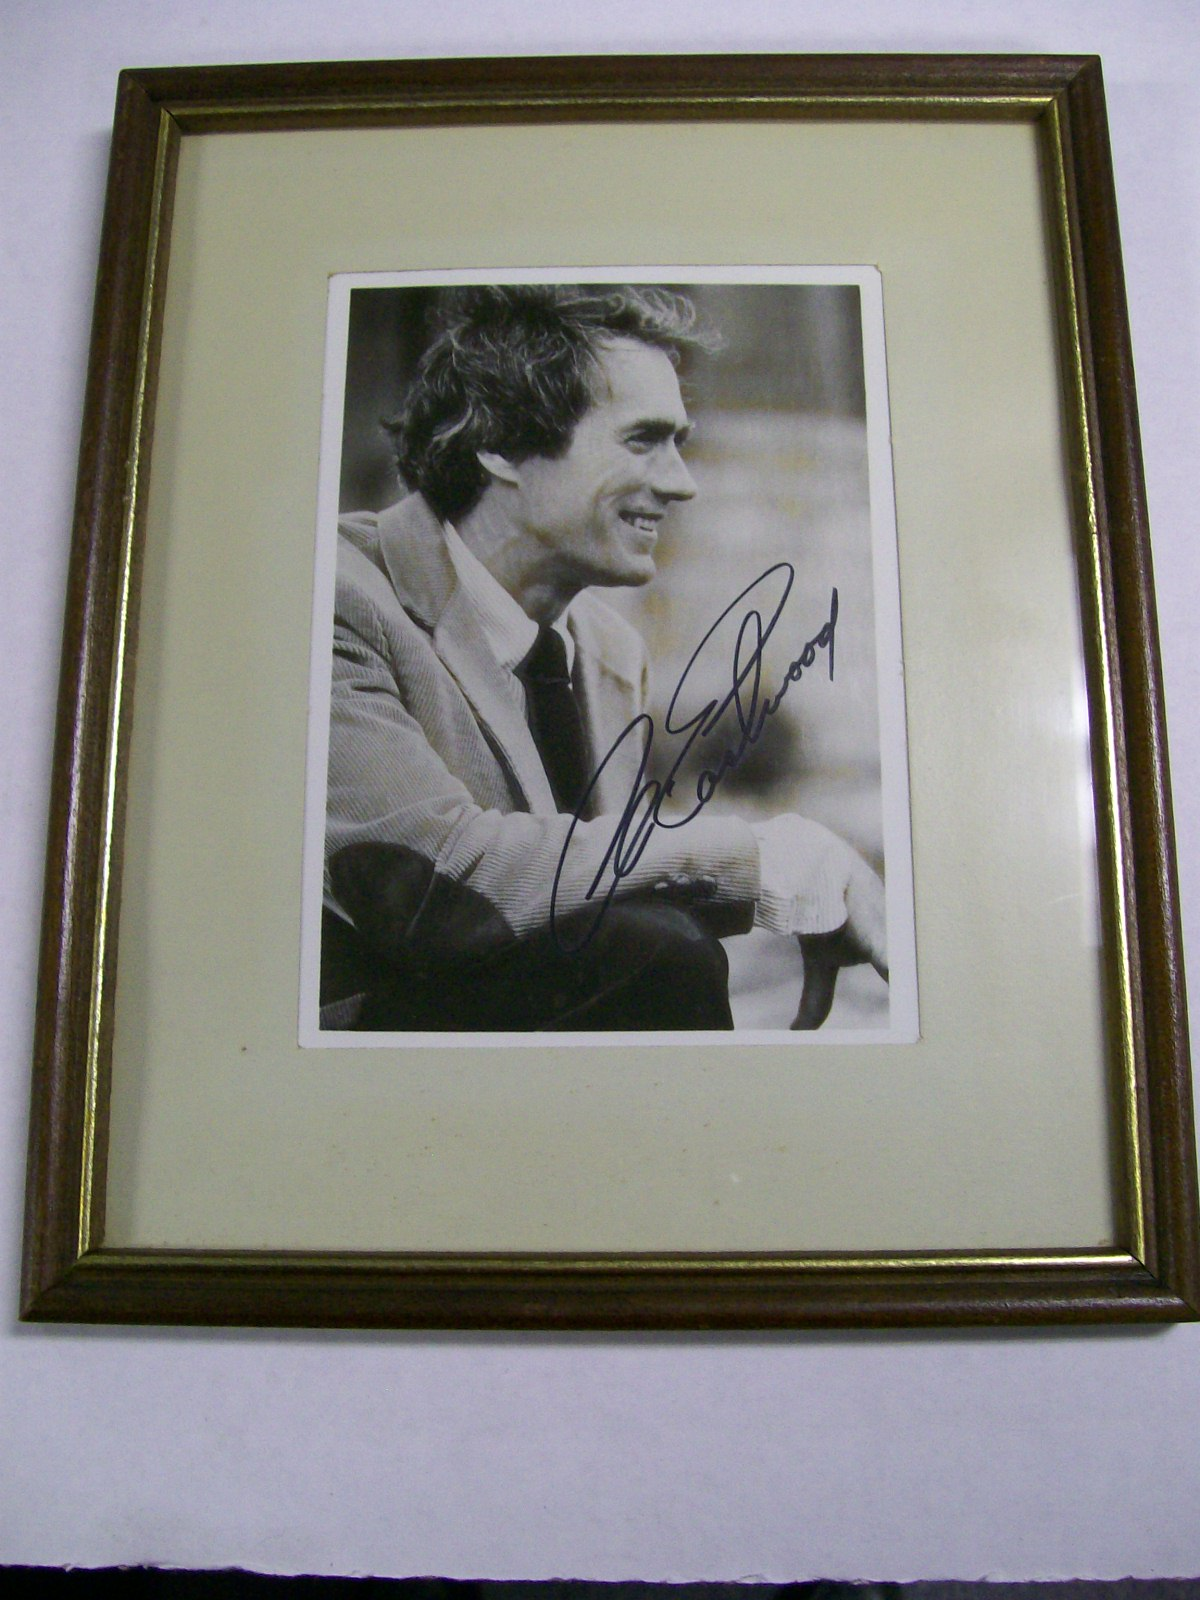 Clint Eastwood Framed Autographed Photo Dated 1988 on back